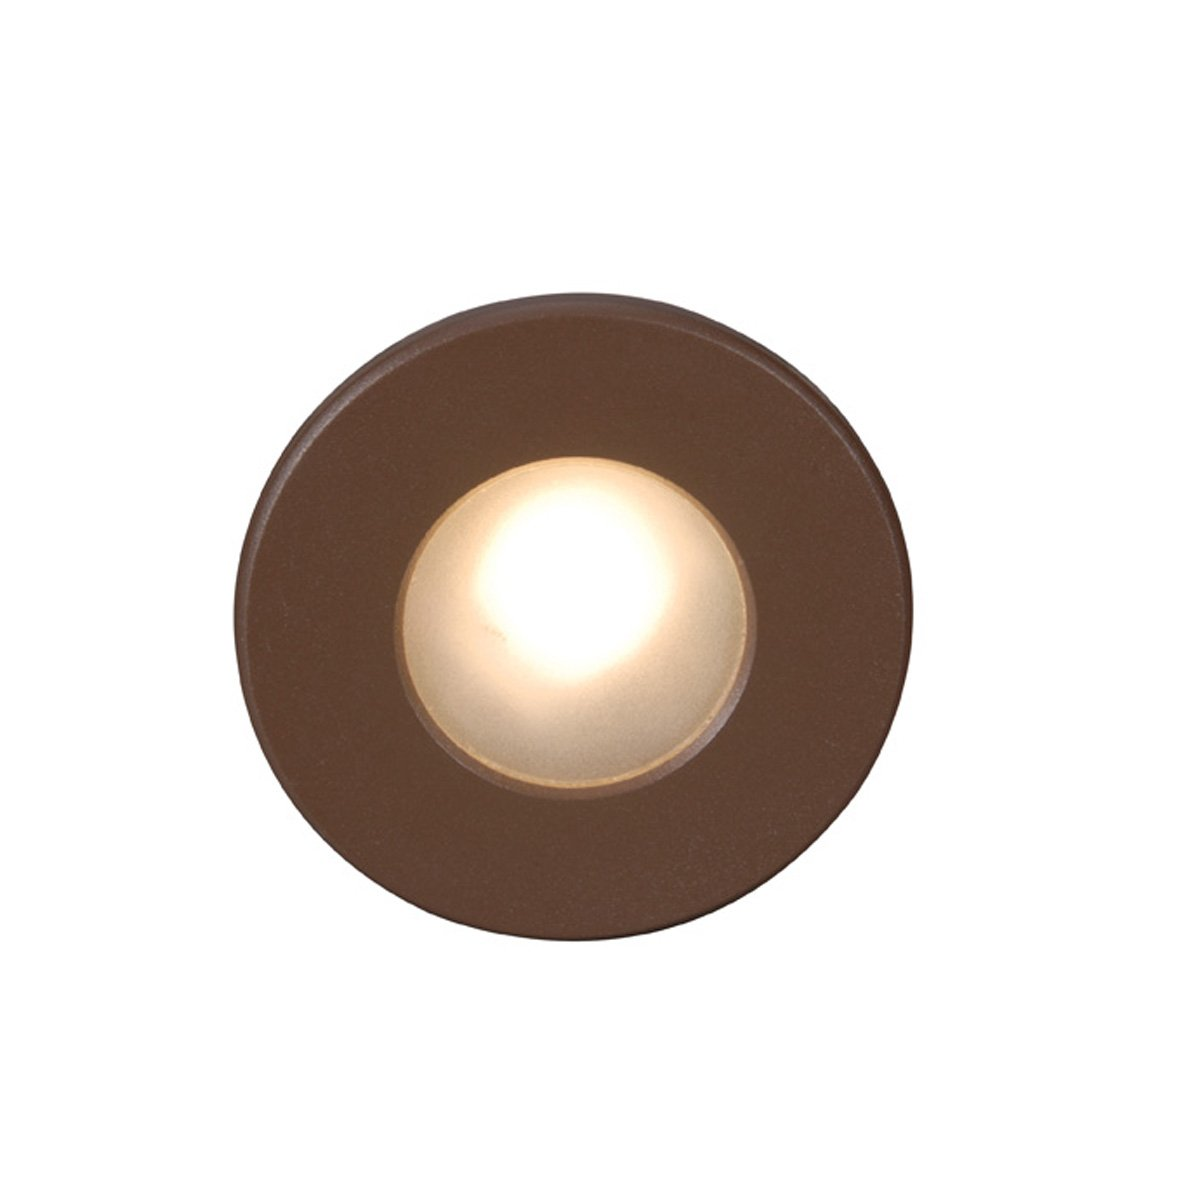 WAC Lighting WL-LED310-C-BZ LED Step Light Circular Face by WAC Lighting